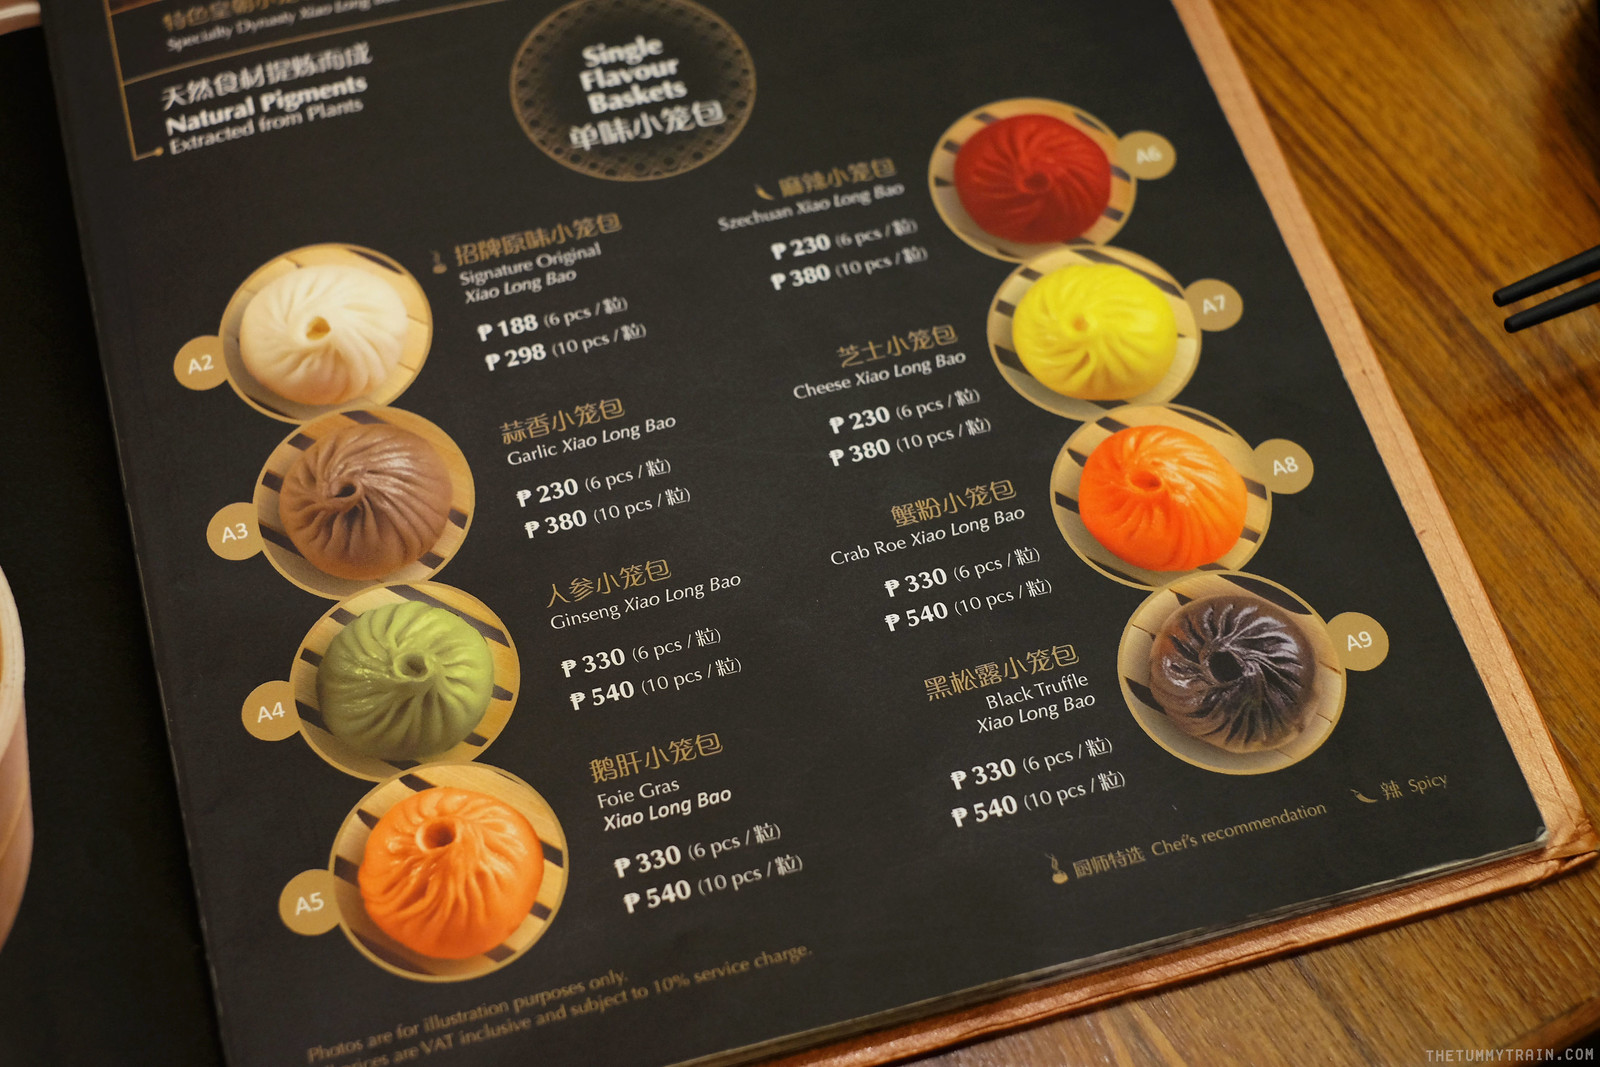 33146833476 b2ccaff1d3 h - Sampling the famous colourful xiao long bao at Paradise Dynasty S Maison